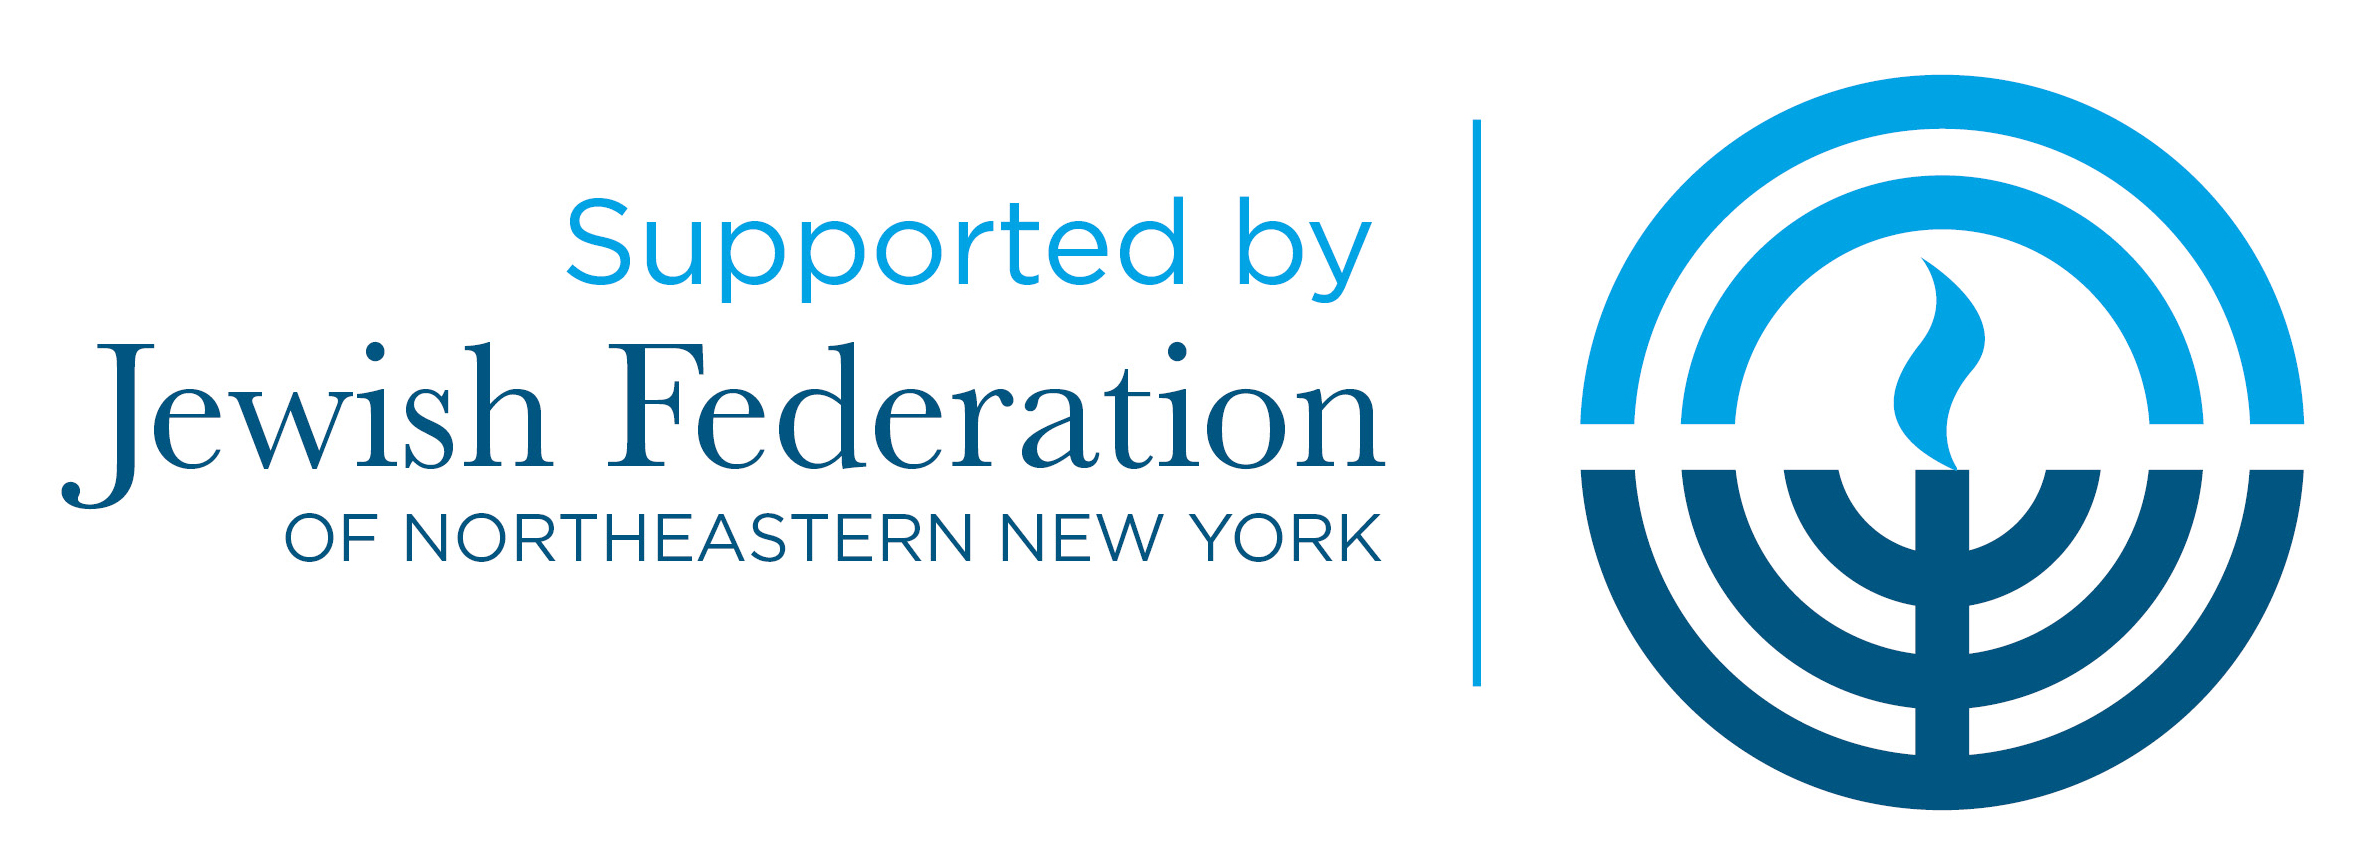 Jewish Federation of Northeastern NY